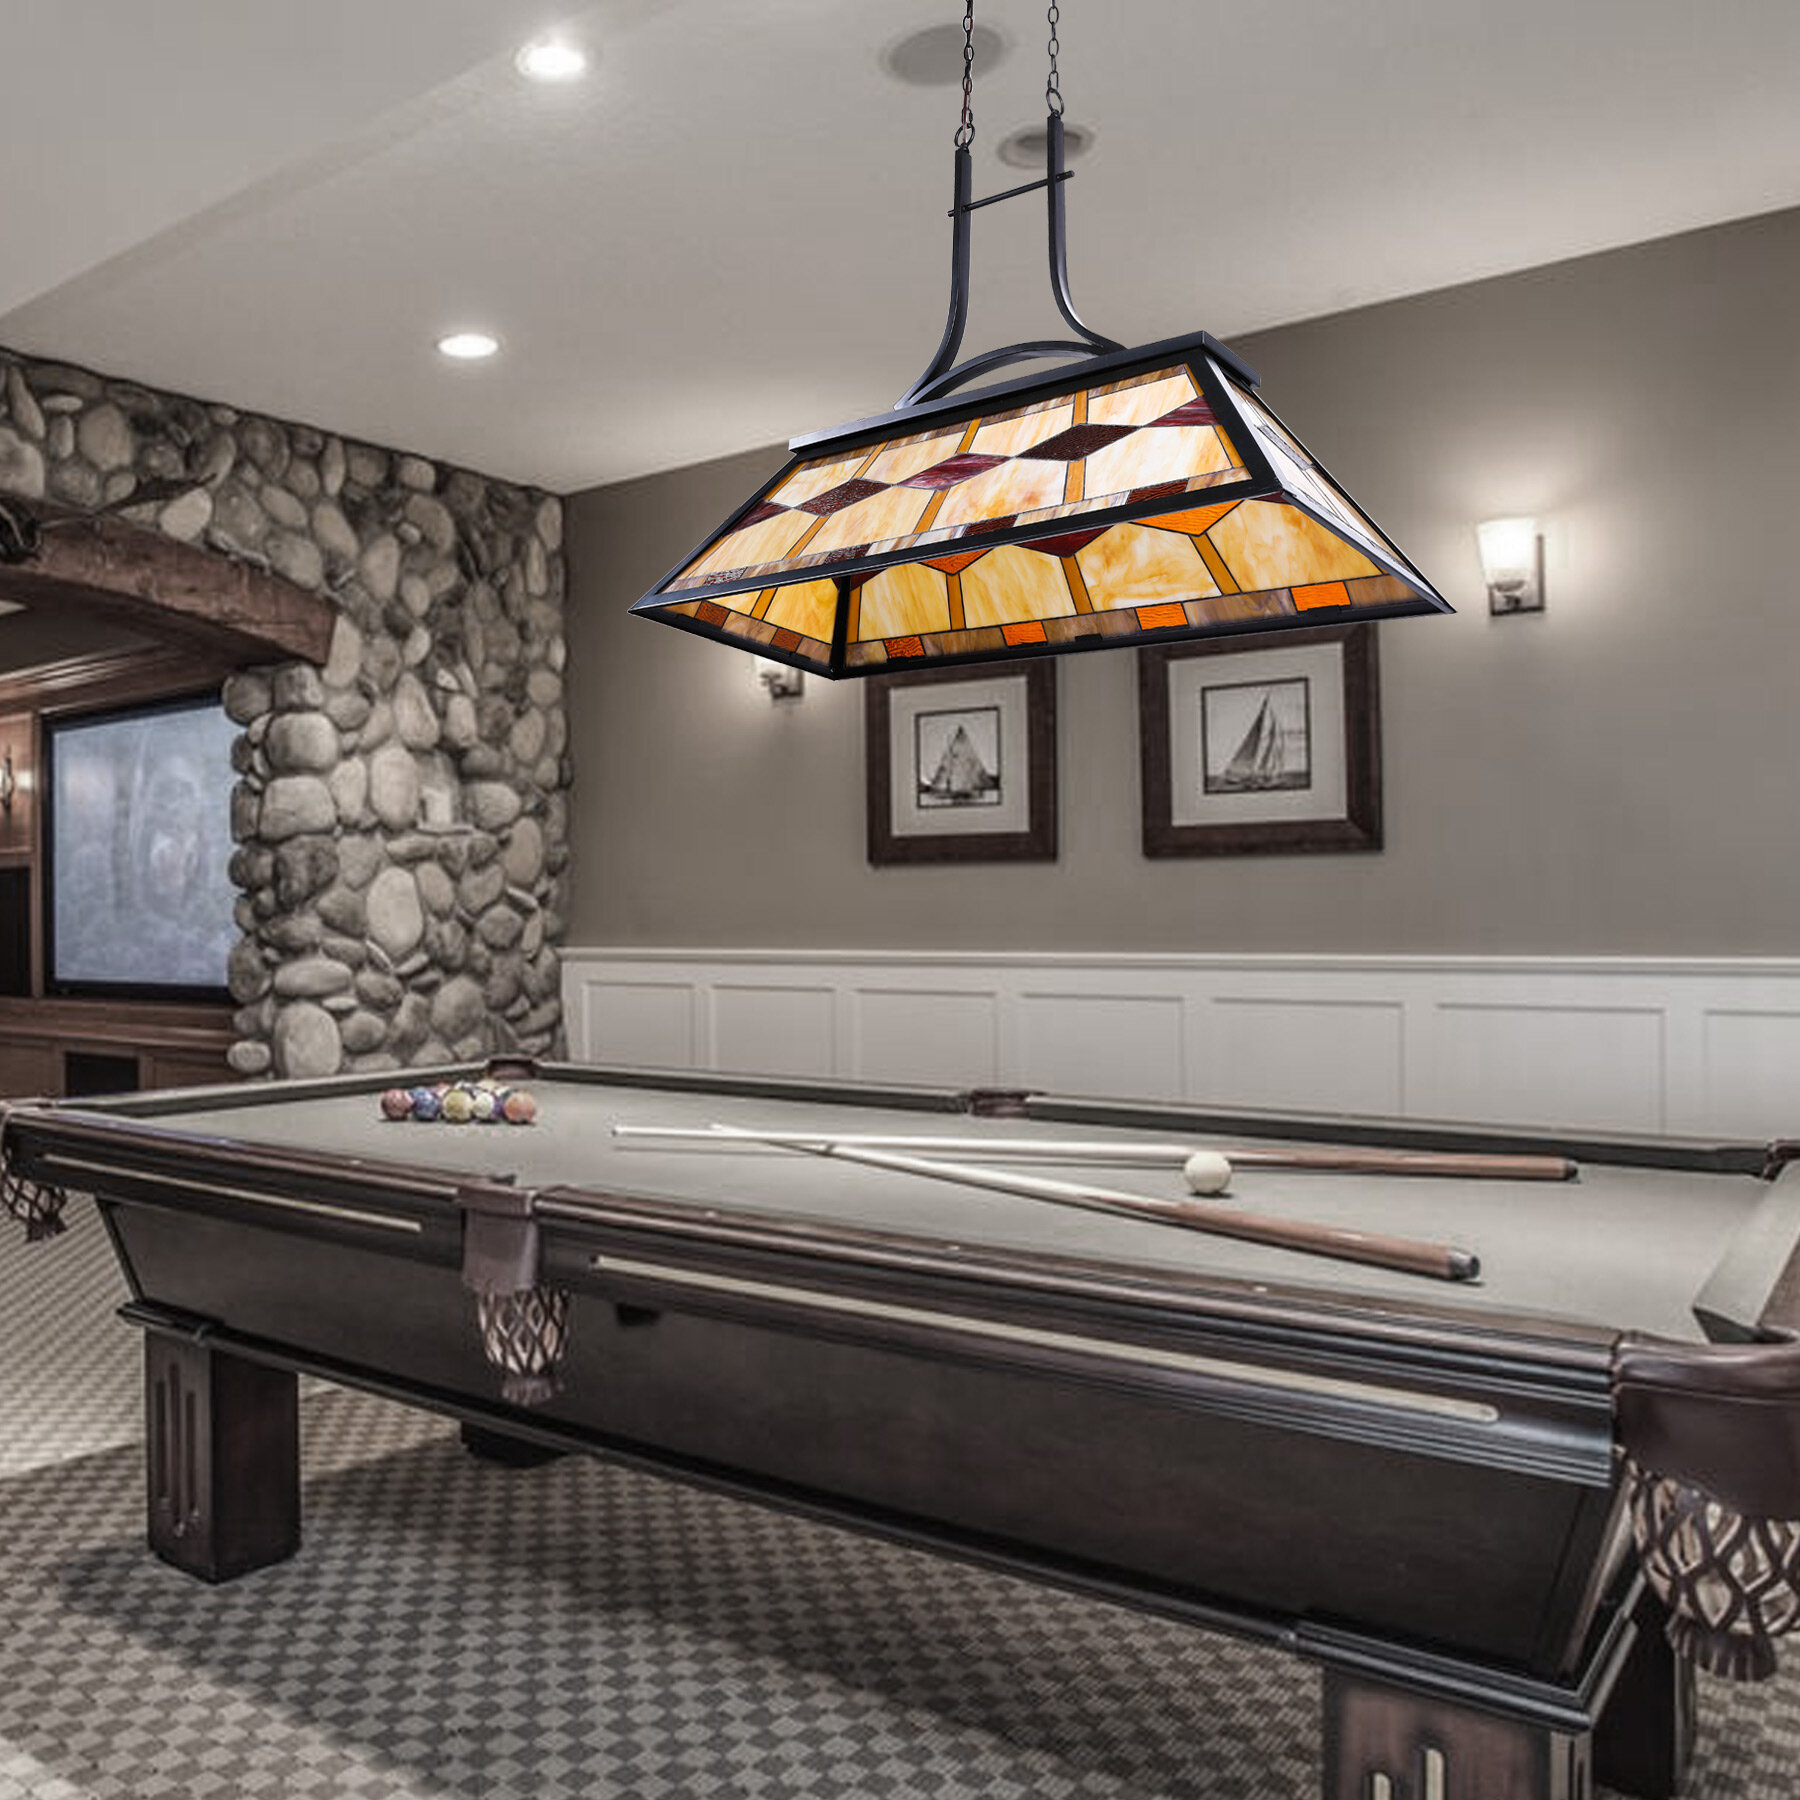 Millwood Pines Dake 3 Light Pool Table Linear Pendant With Wrought Iron Accents Reviews Wayfair